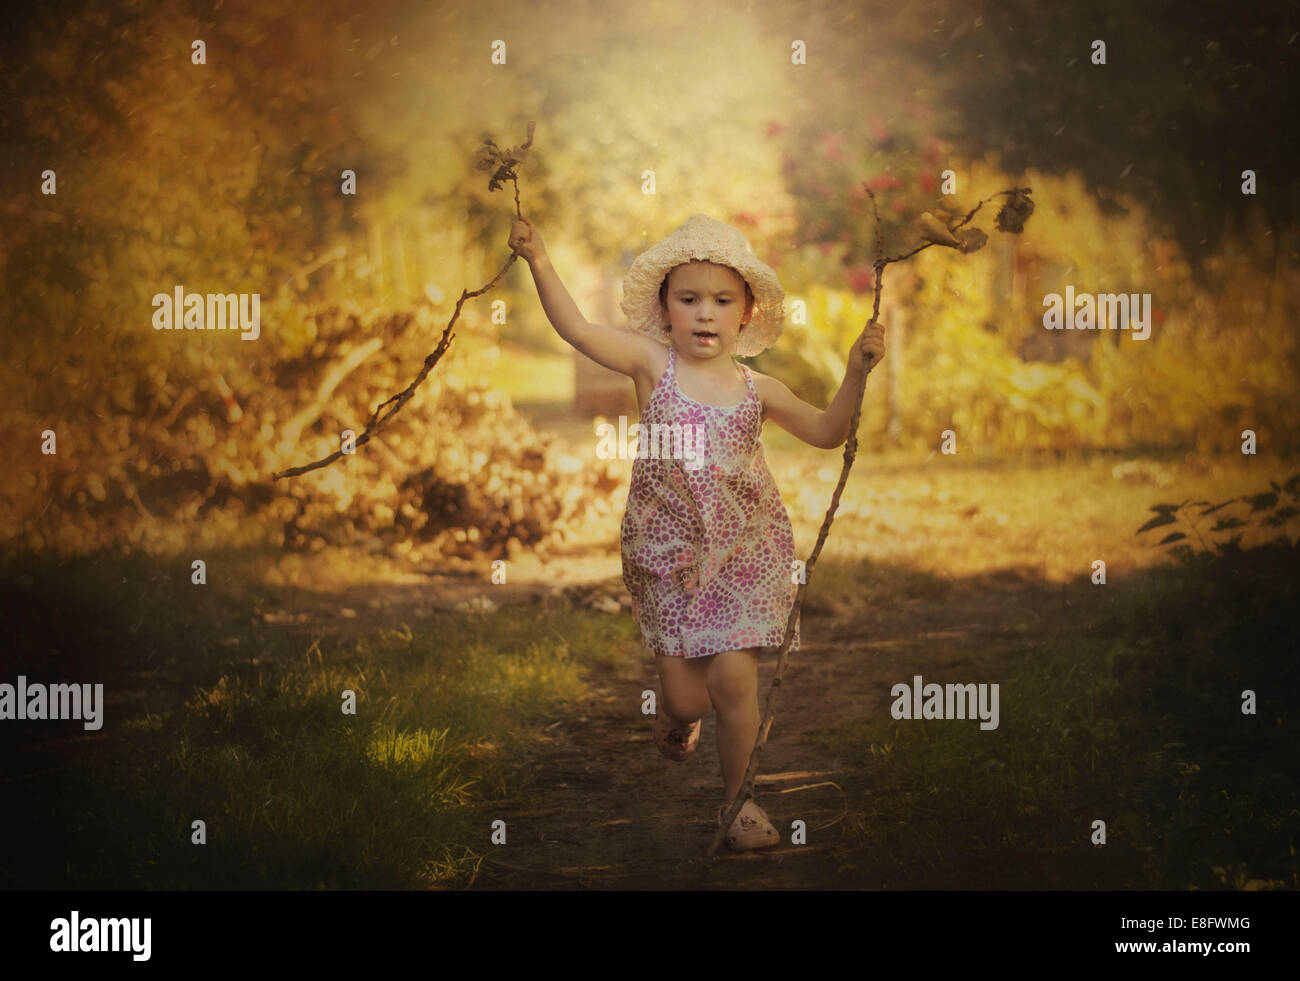 Girl running with dry twigs - Stock Image